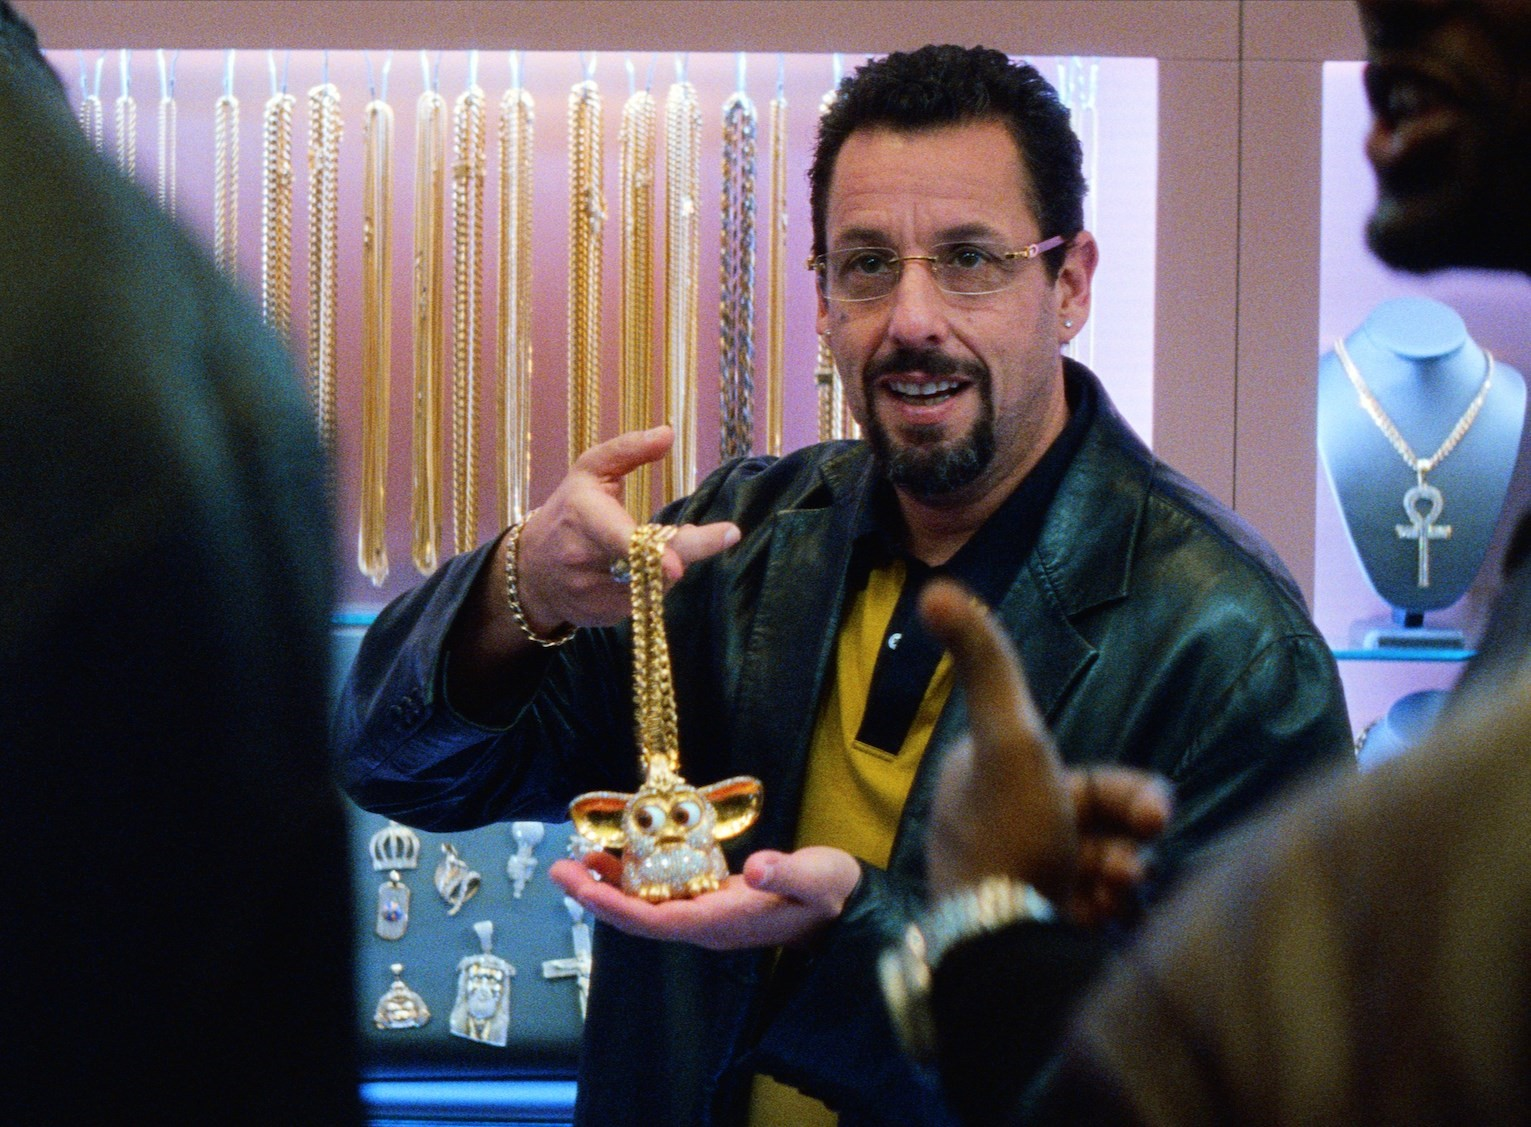 adam sandler's howard holds up a diamond-encrusted furby from behind a jewelry shop counter